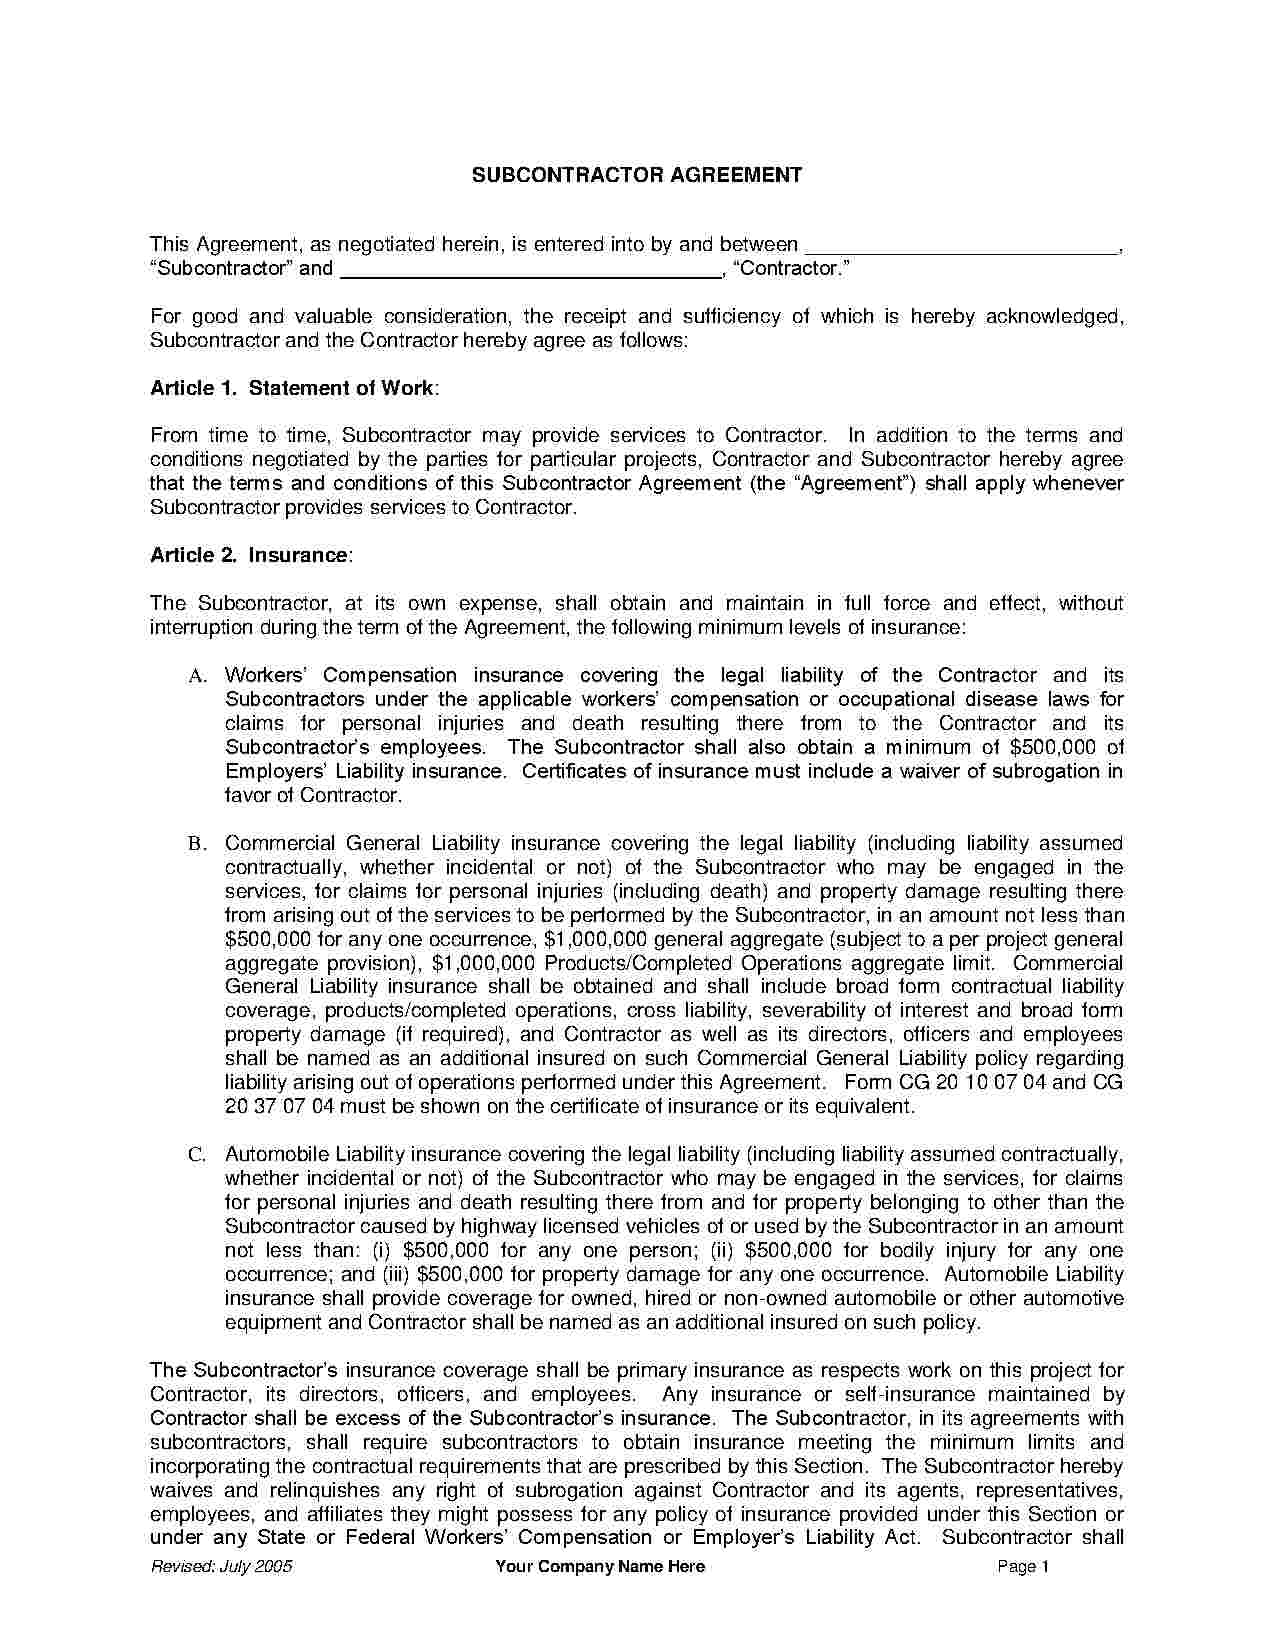 Download Subcontractor Agreement Style 12 Template For Free At - Free Printable Subcontractor Agreement